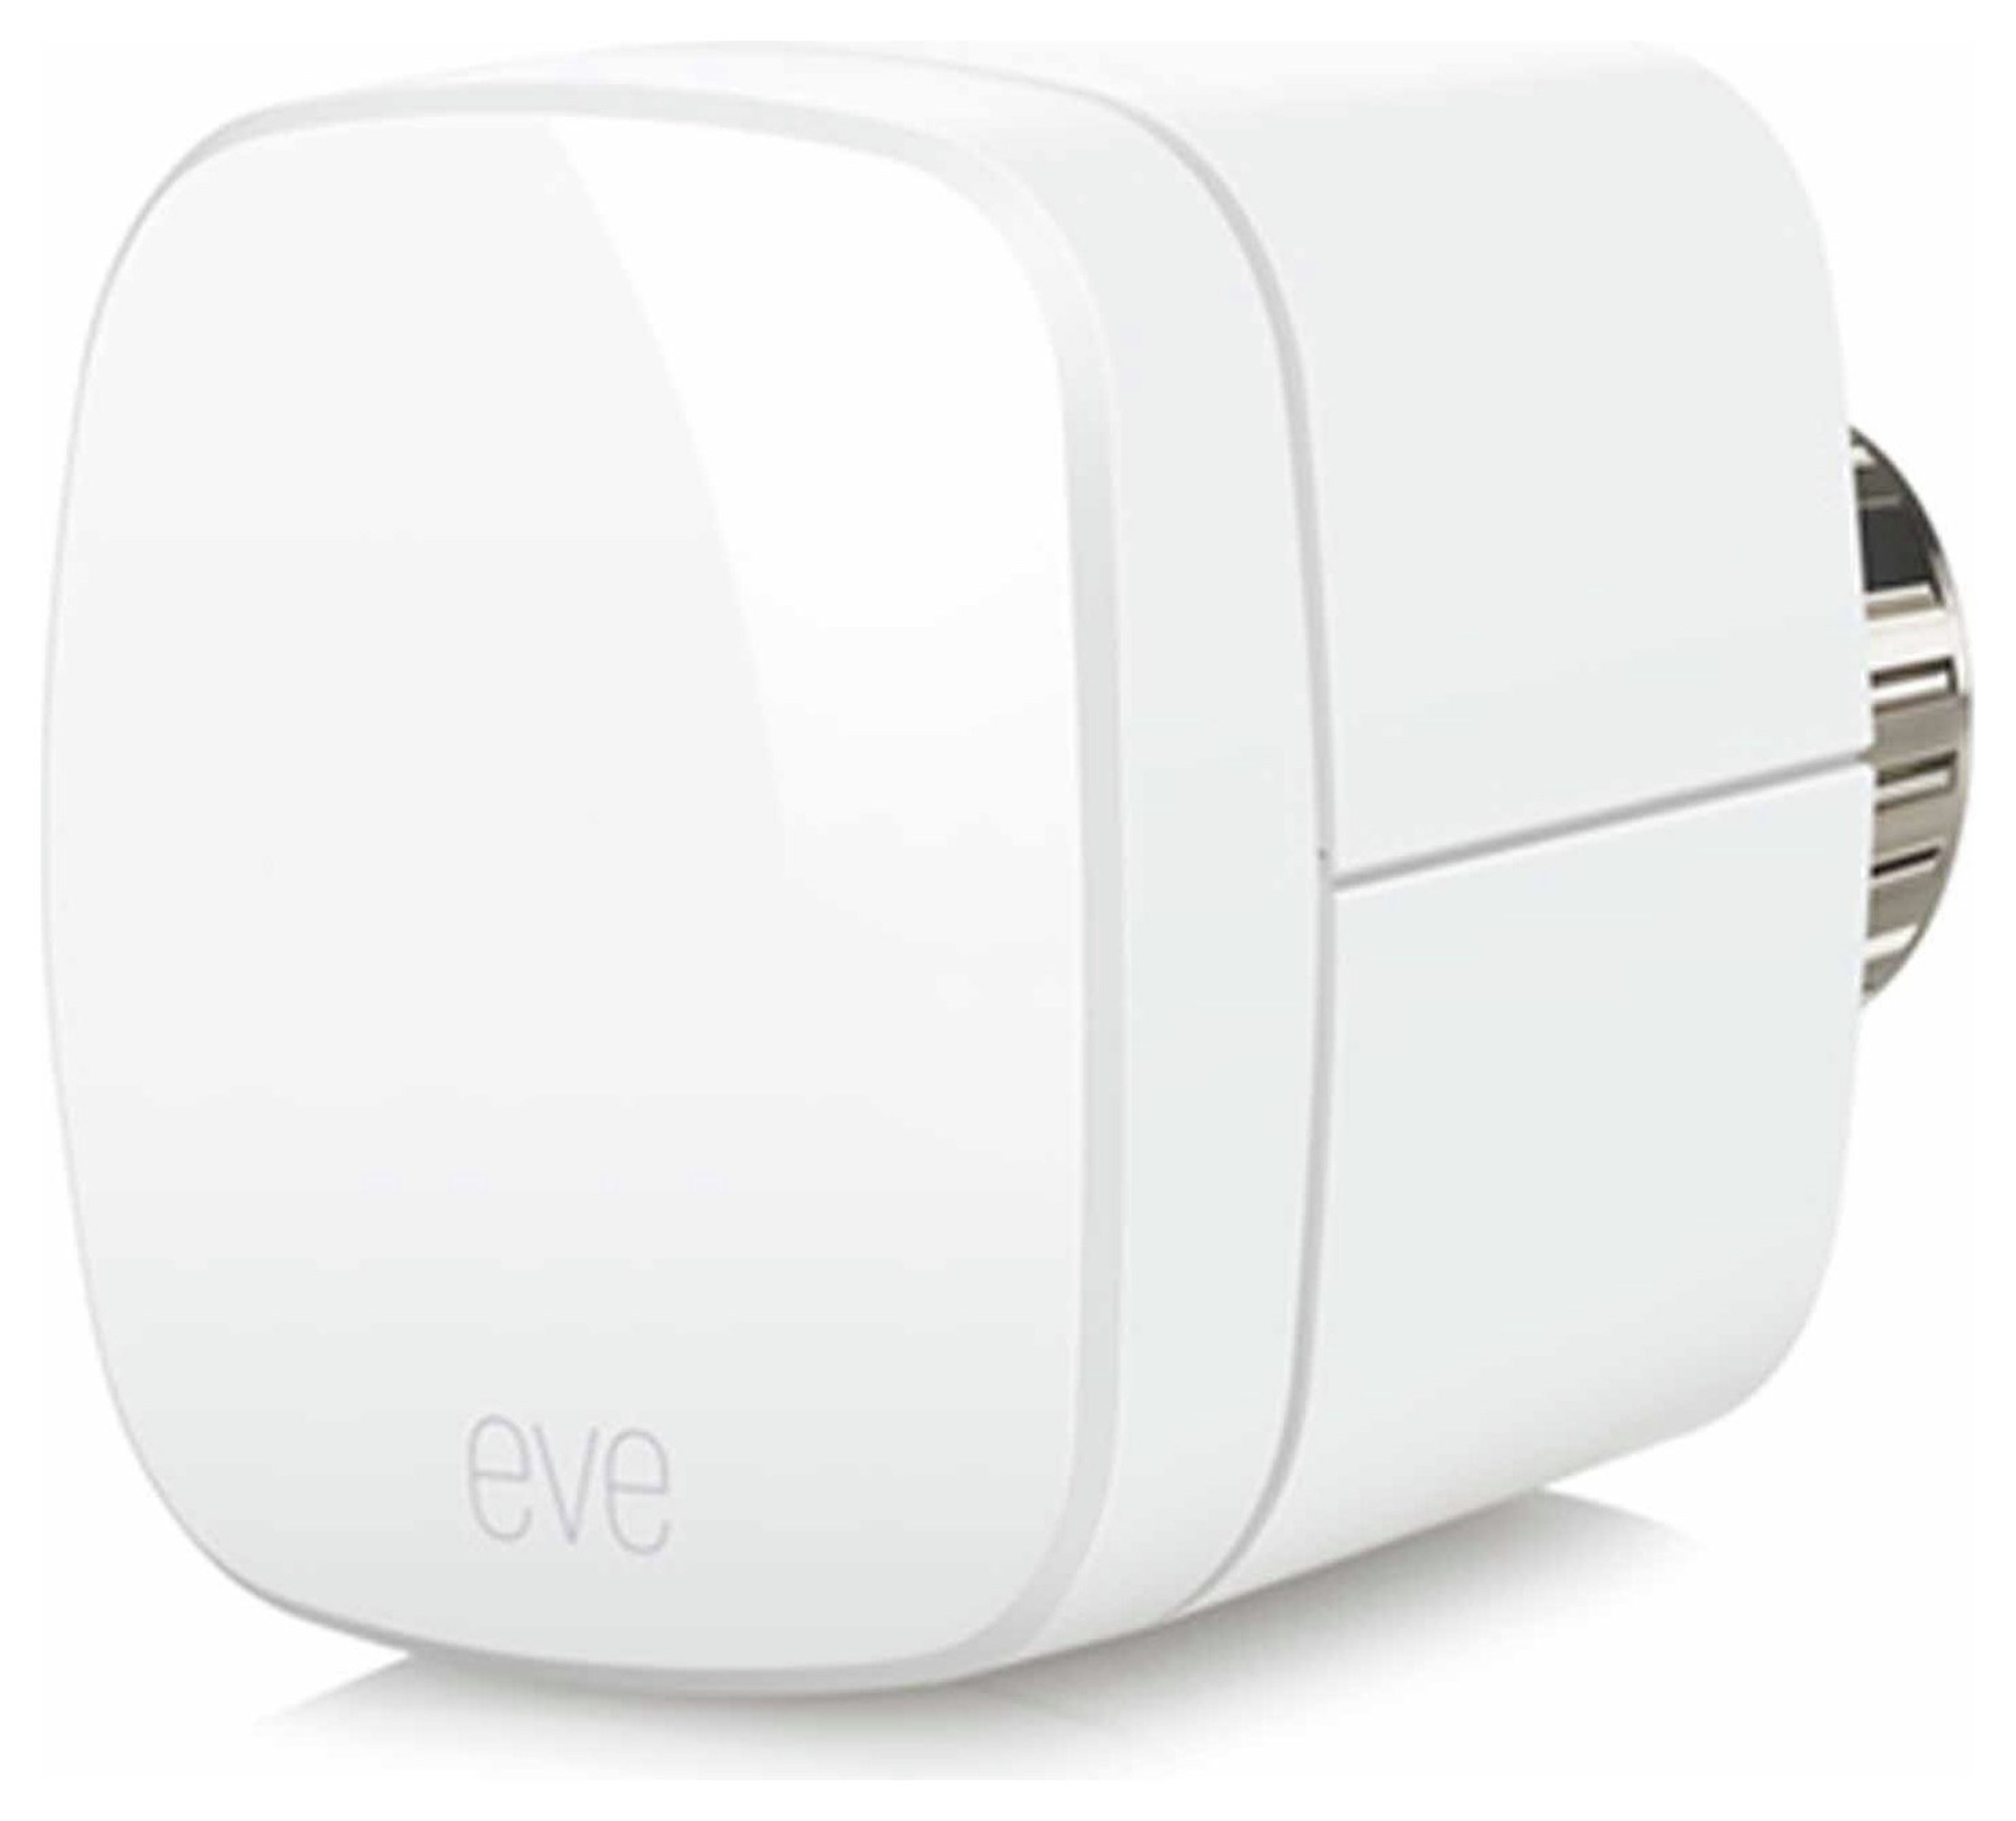 Image of Elgato Eve Thermo Thermostatic Radiator Valve